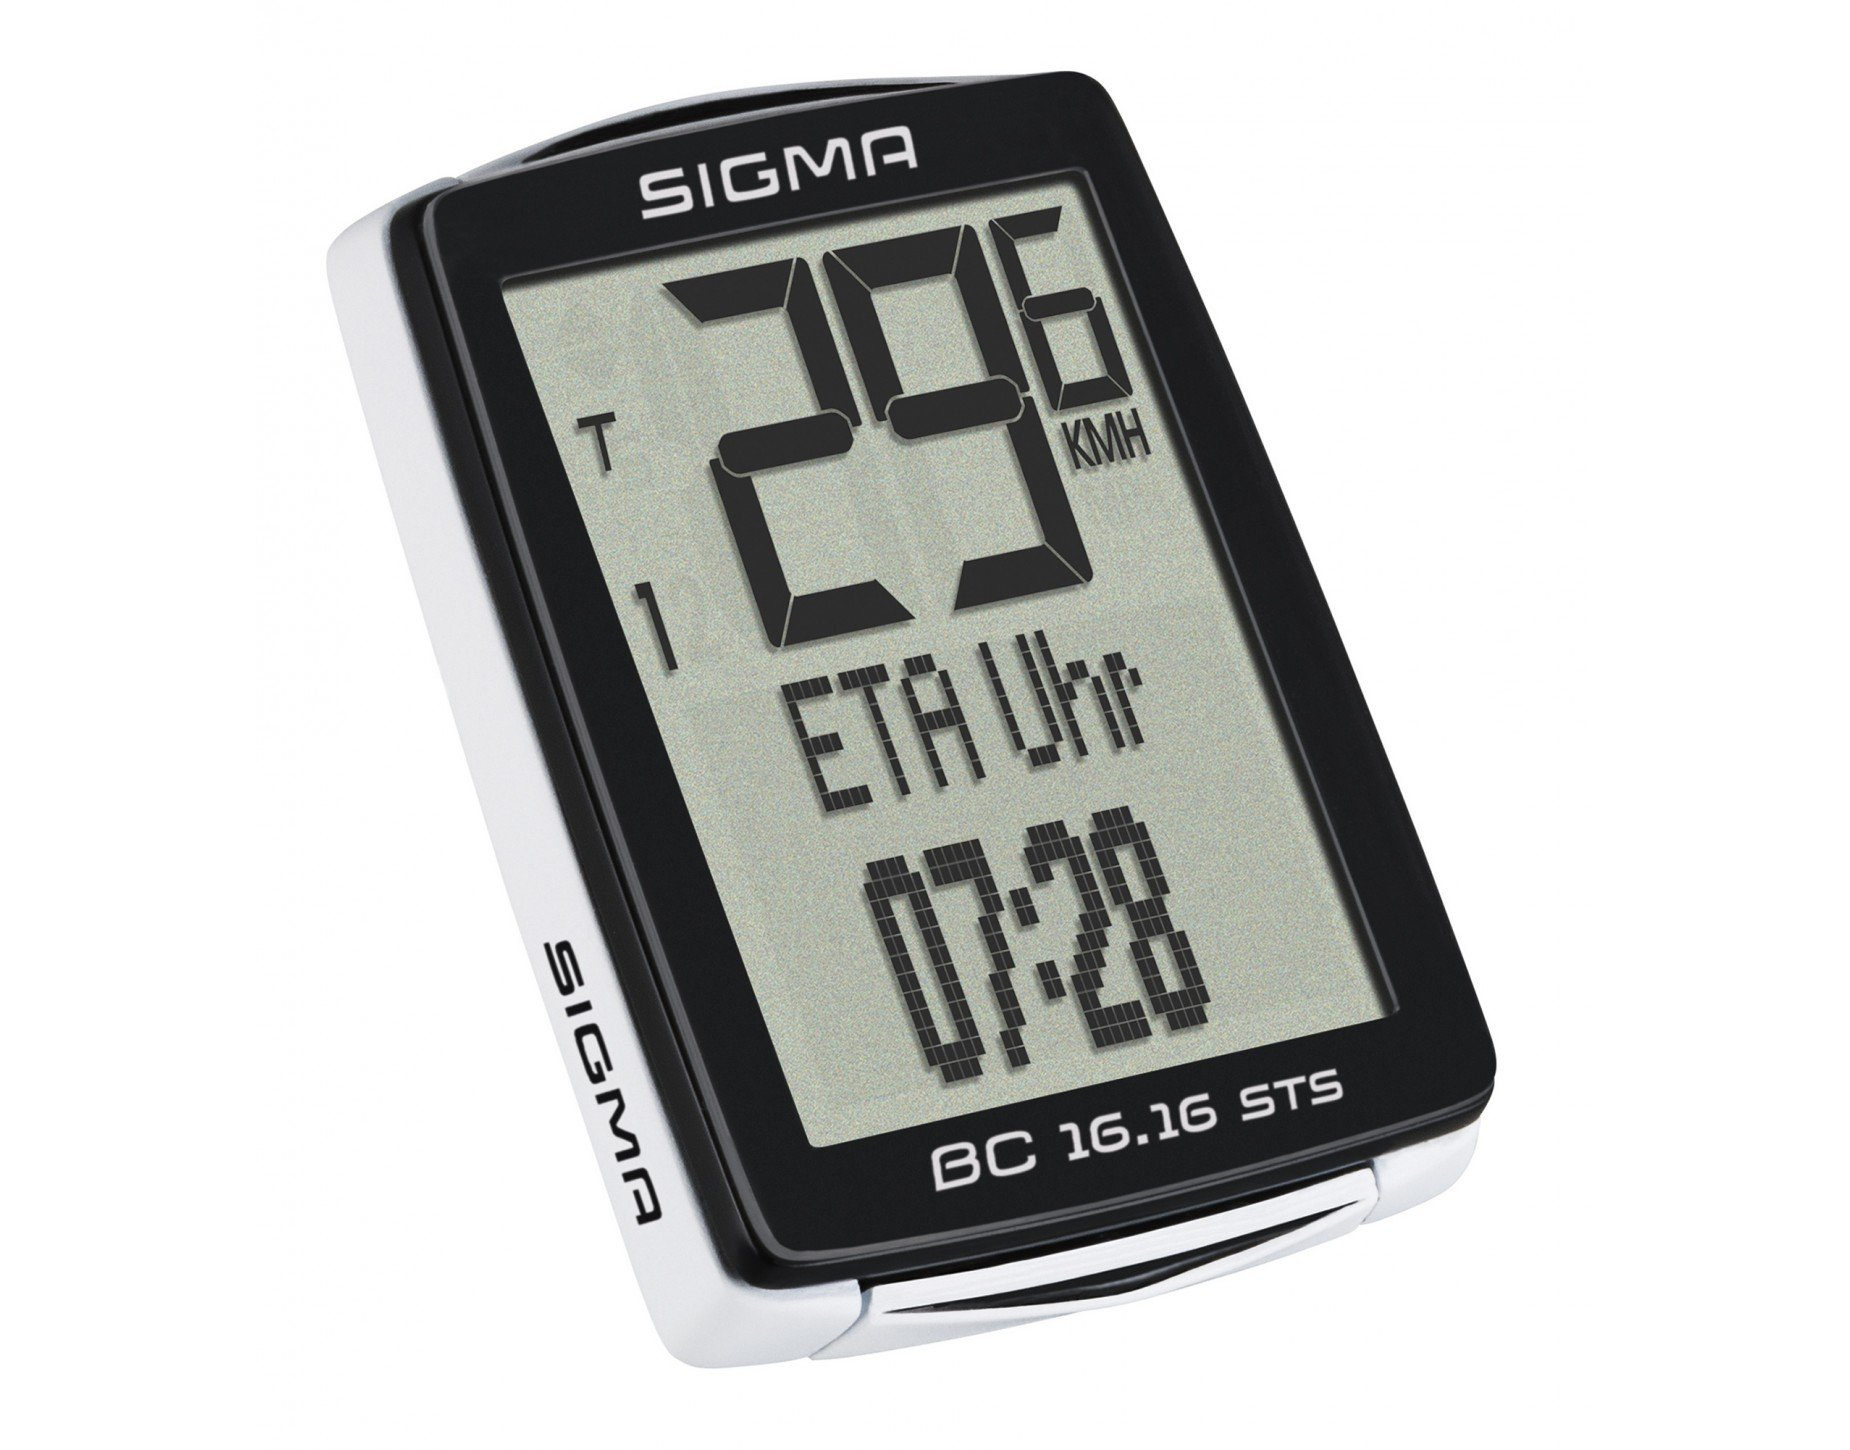 Sigma Sport BC 16.16 STS CAD | Cykelcomputere